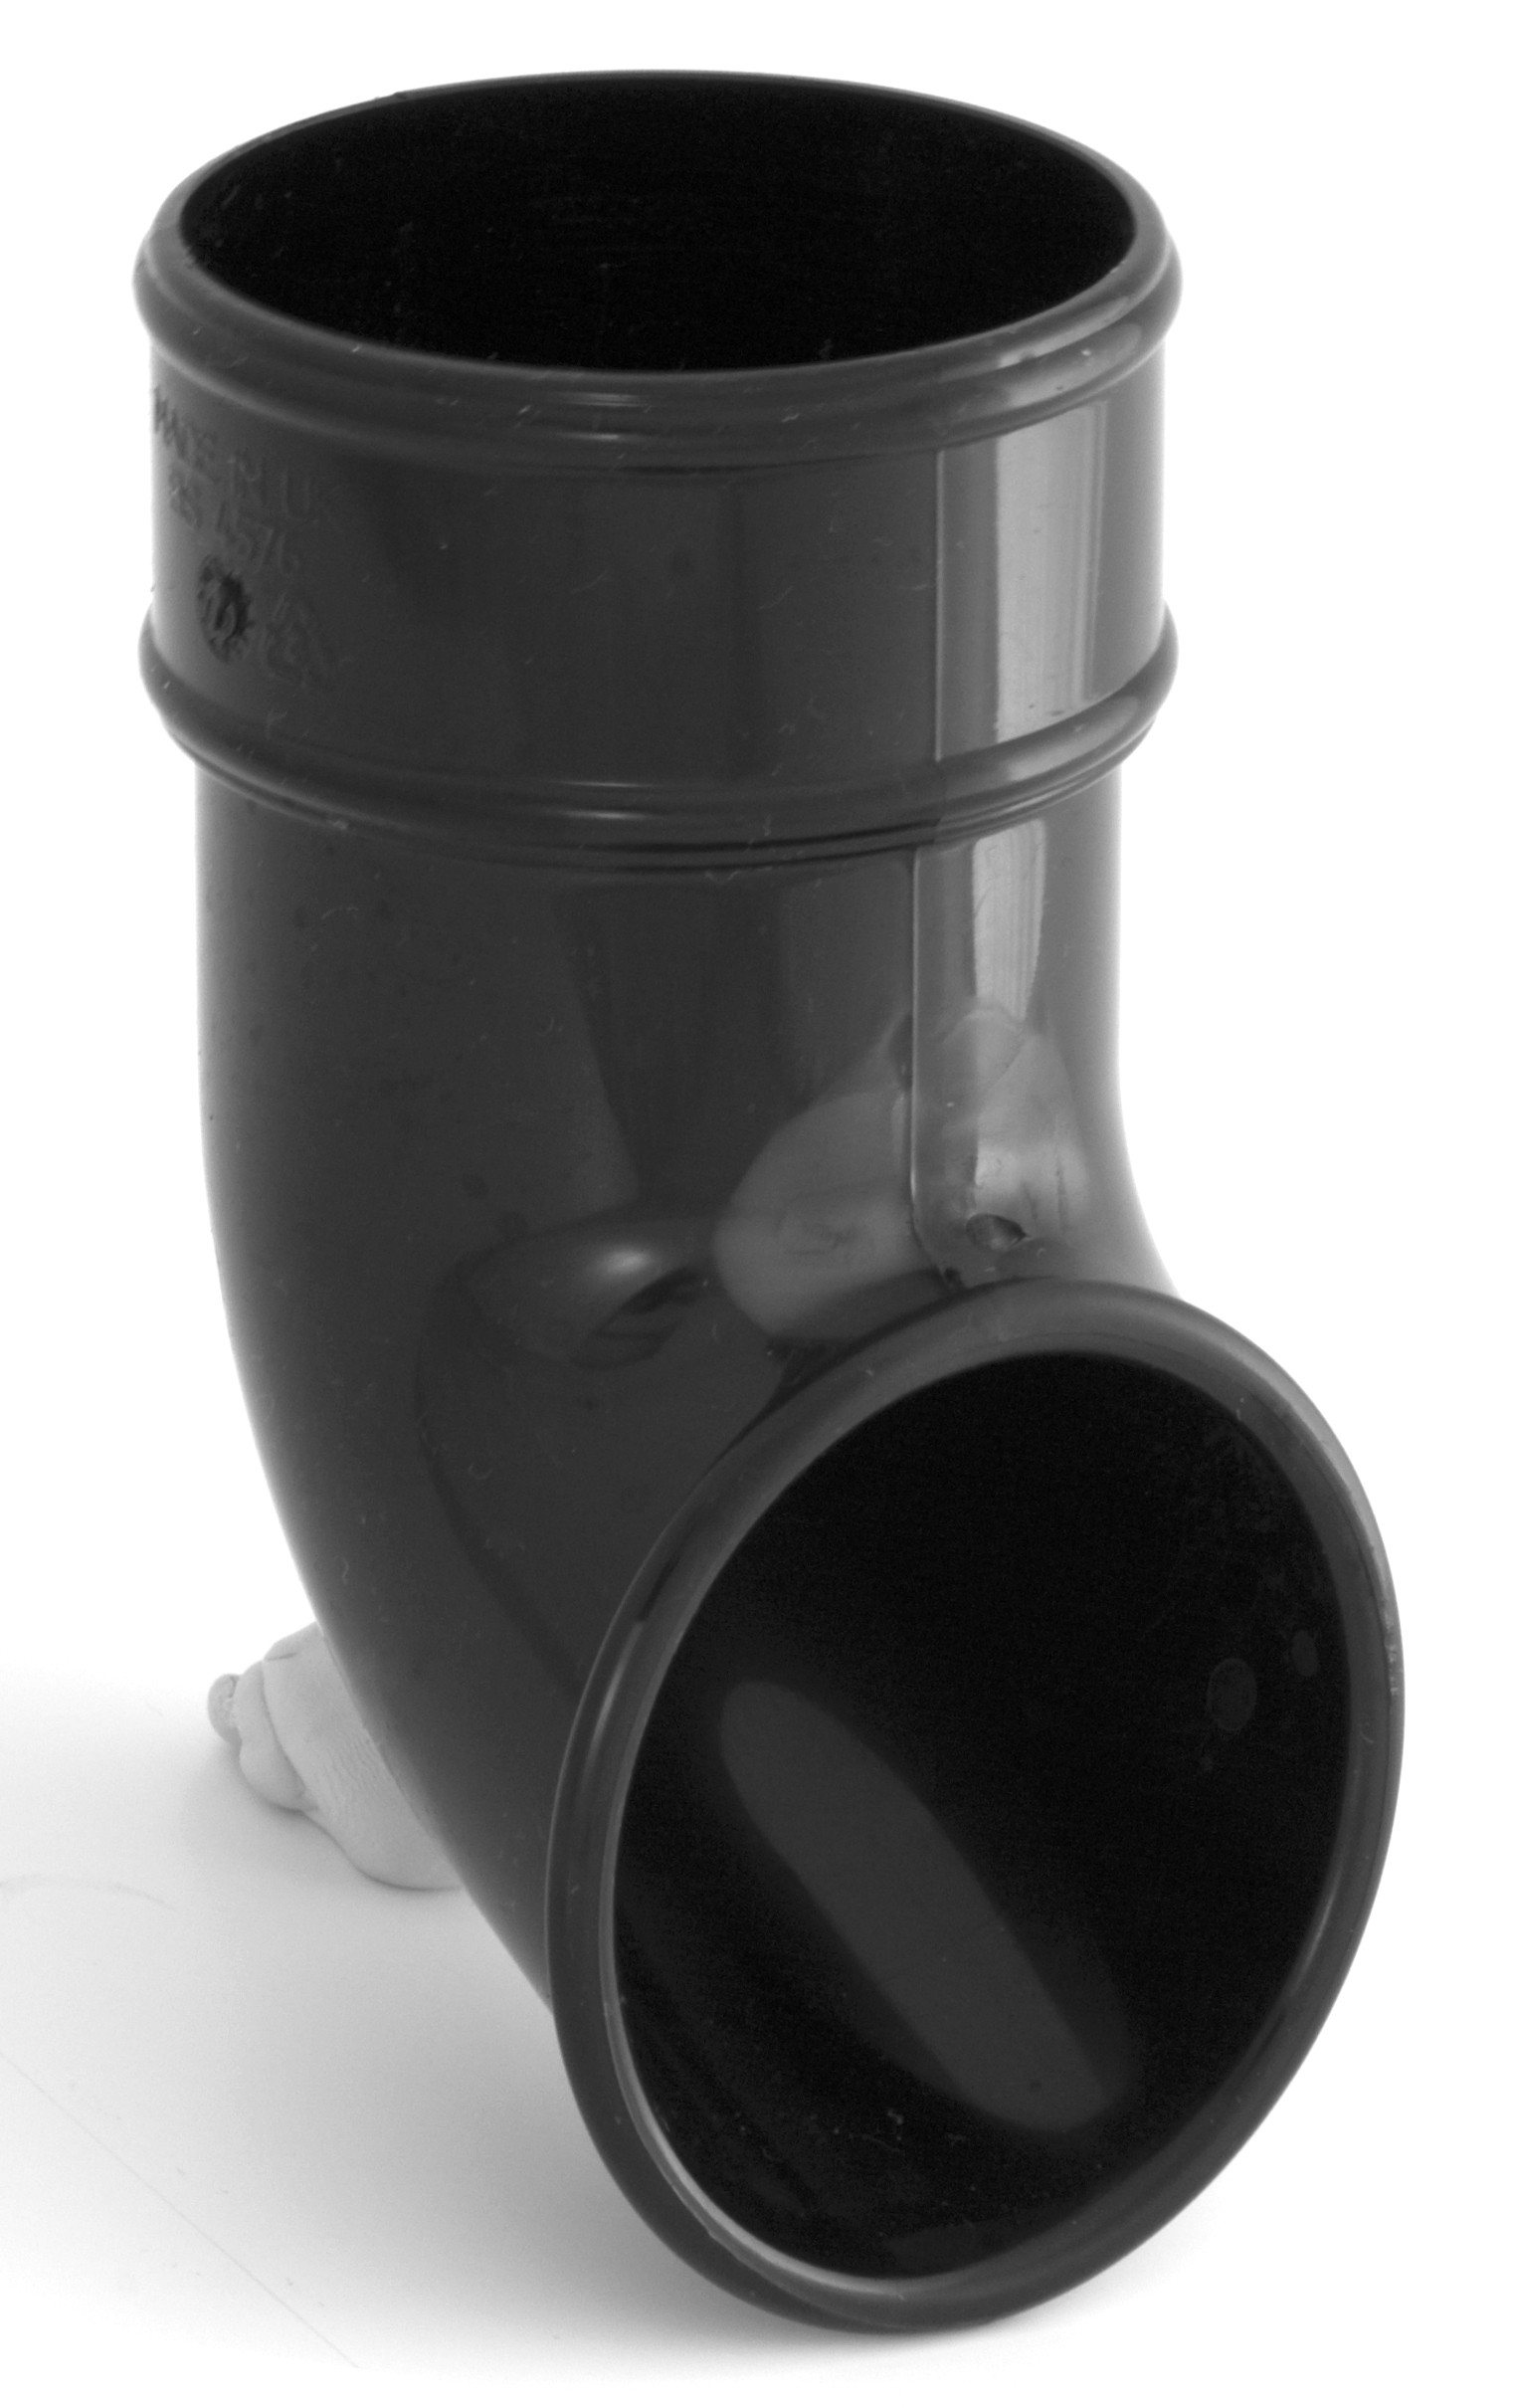 68mm Round Downpipe Shoe Black Round Downpipes Black